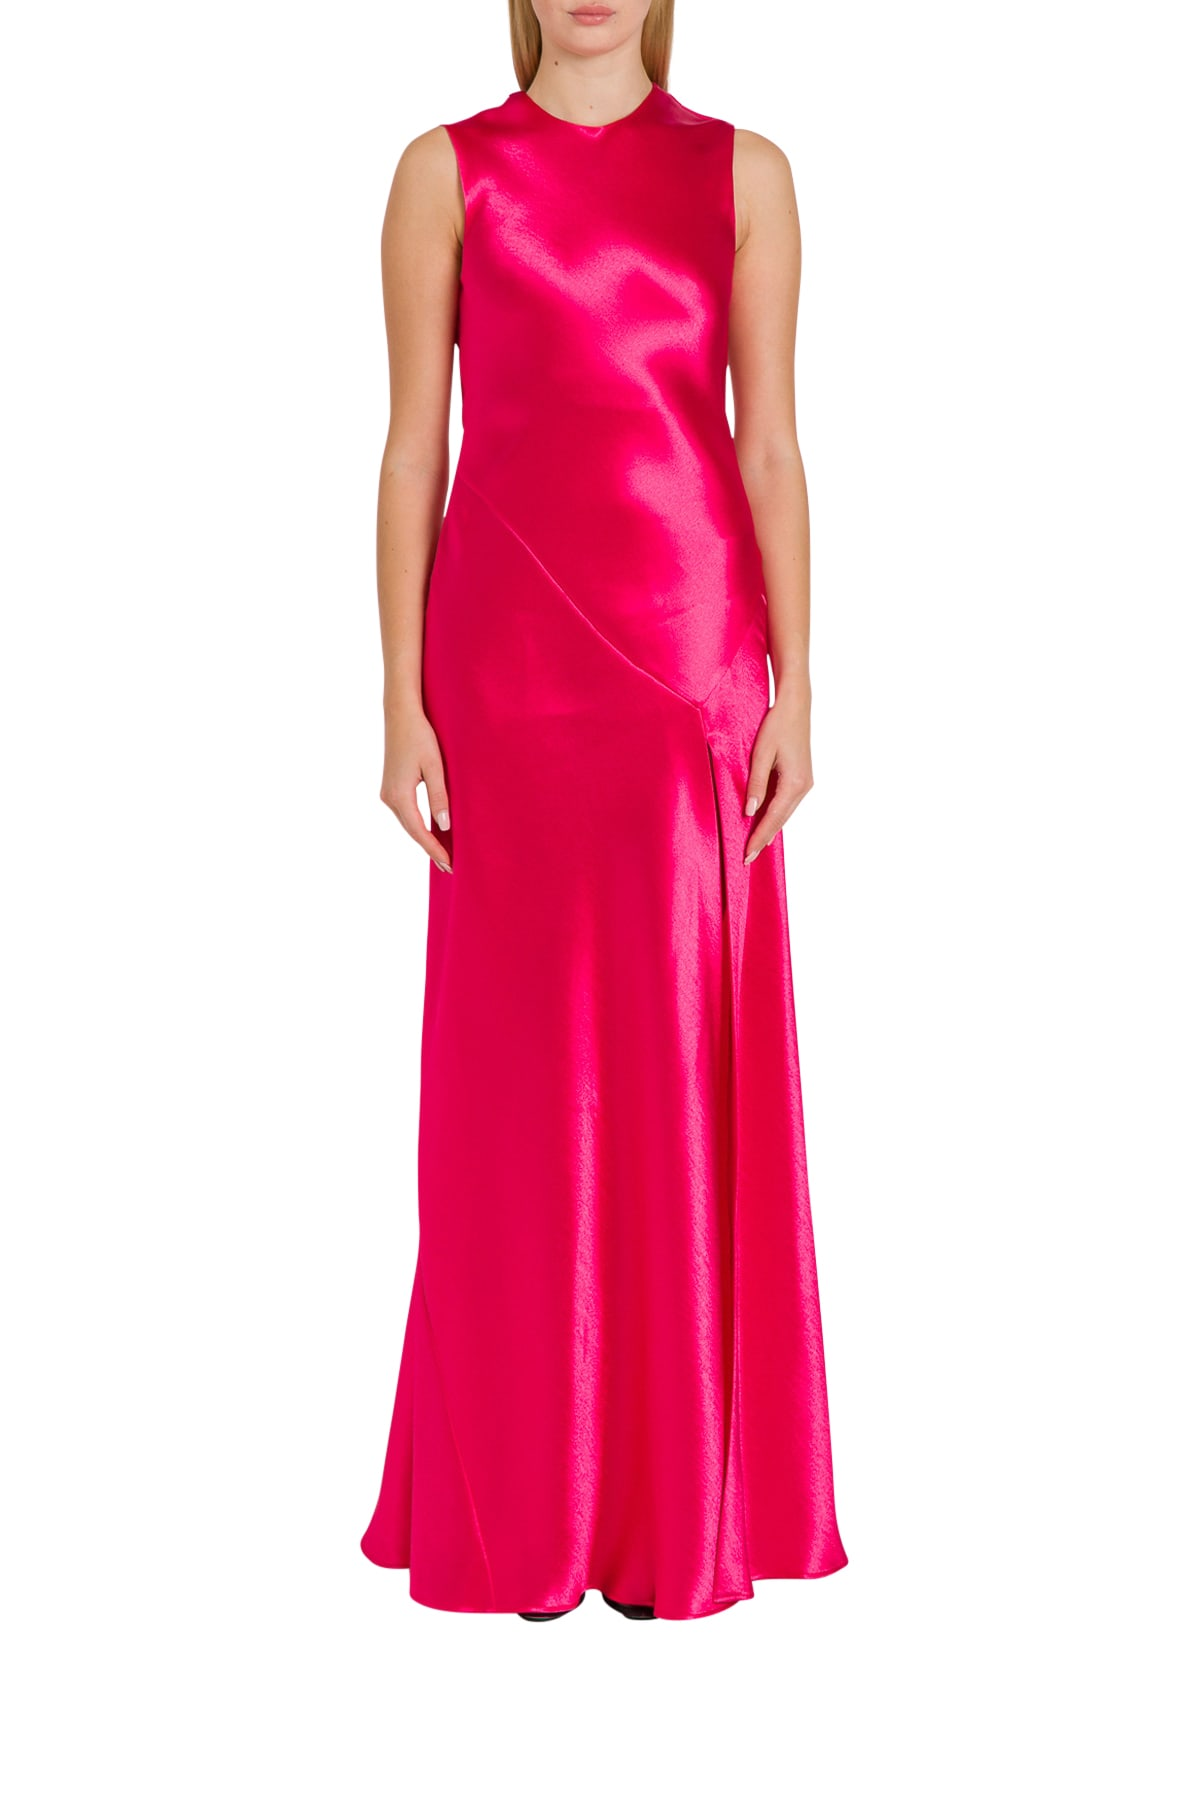 Philosophy di Lorenzo Serafini Satin Long Dress With Slit